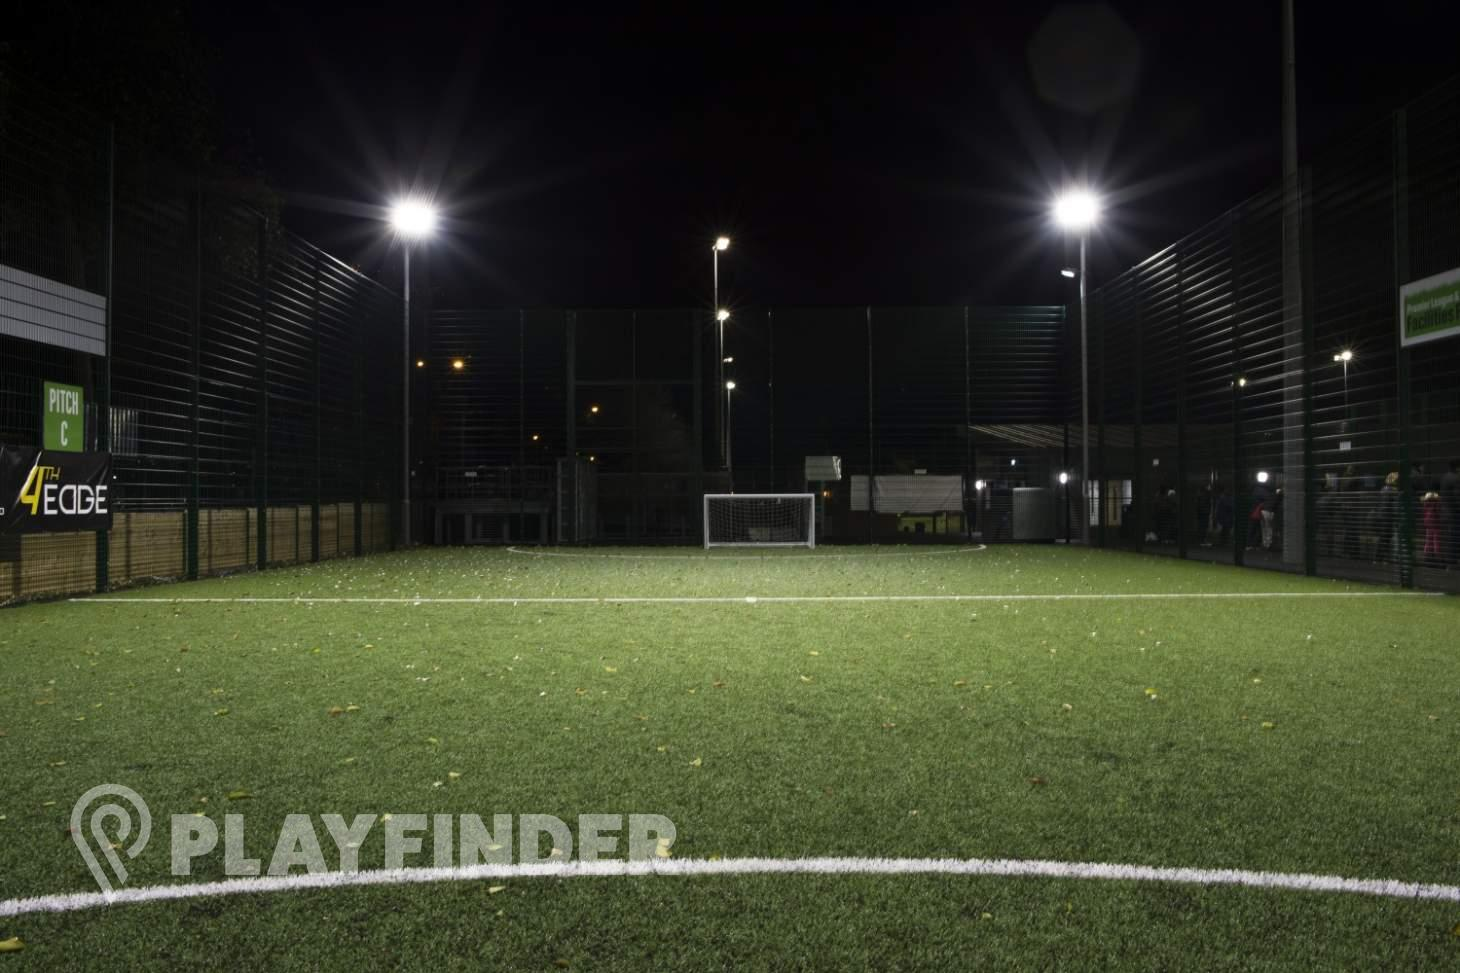 Market Road Football Pitches 5 a side | 3G Astroturf football pitch